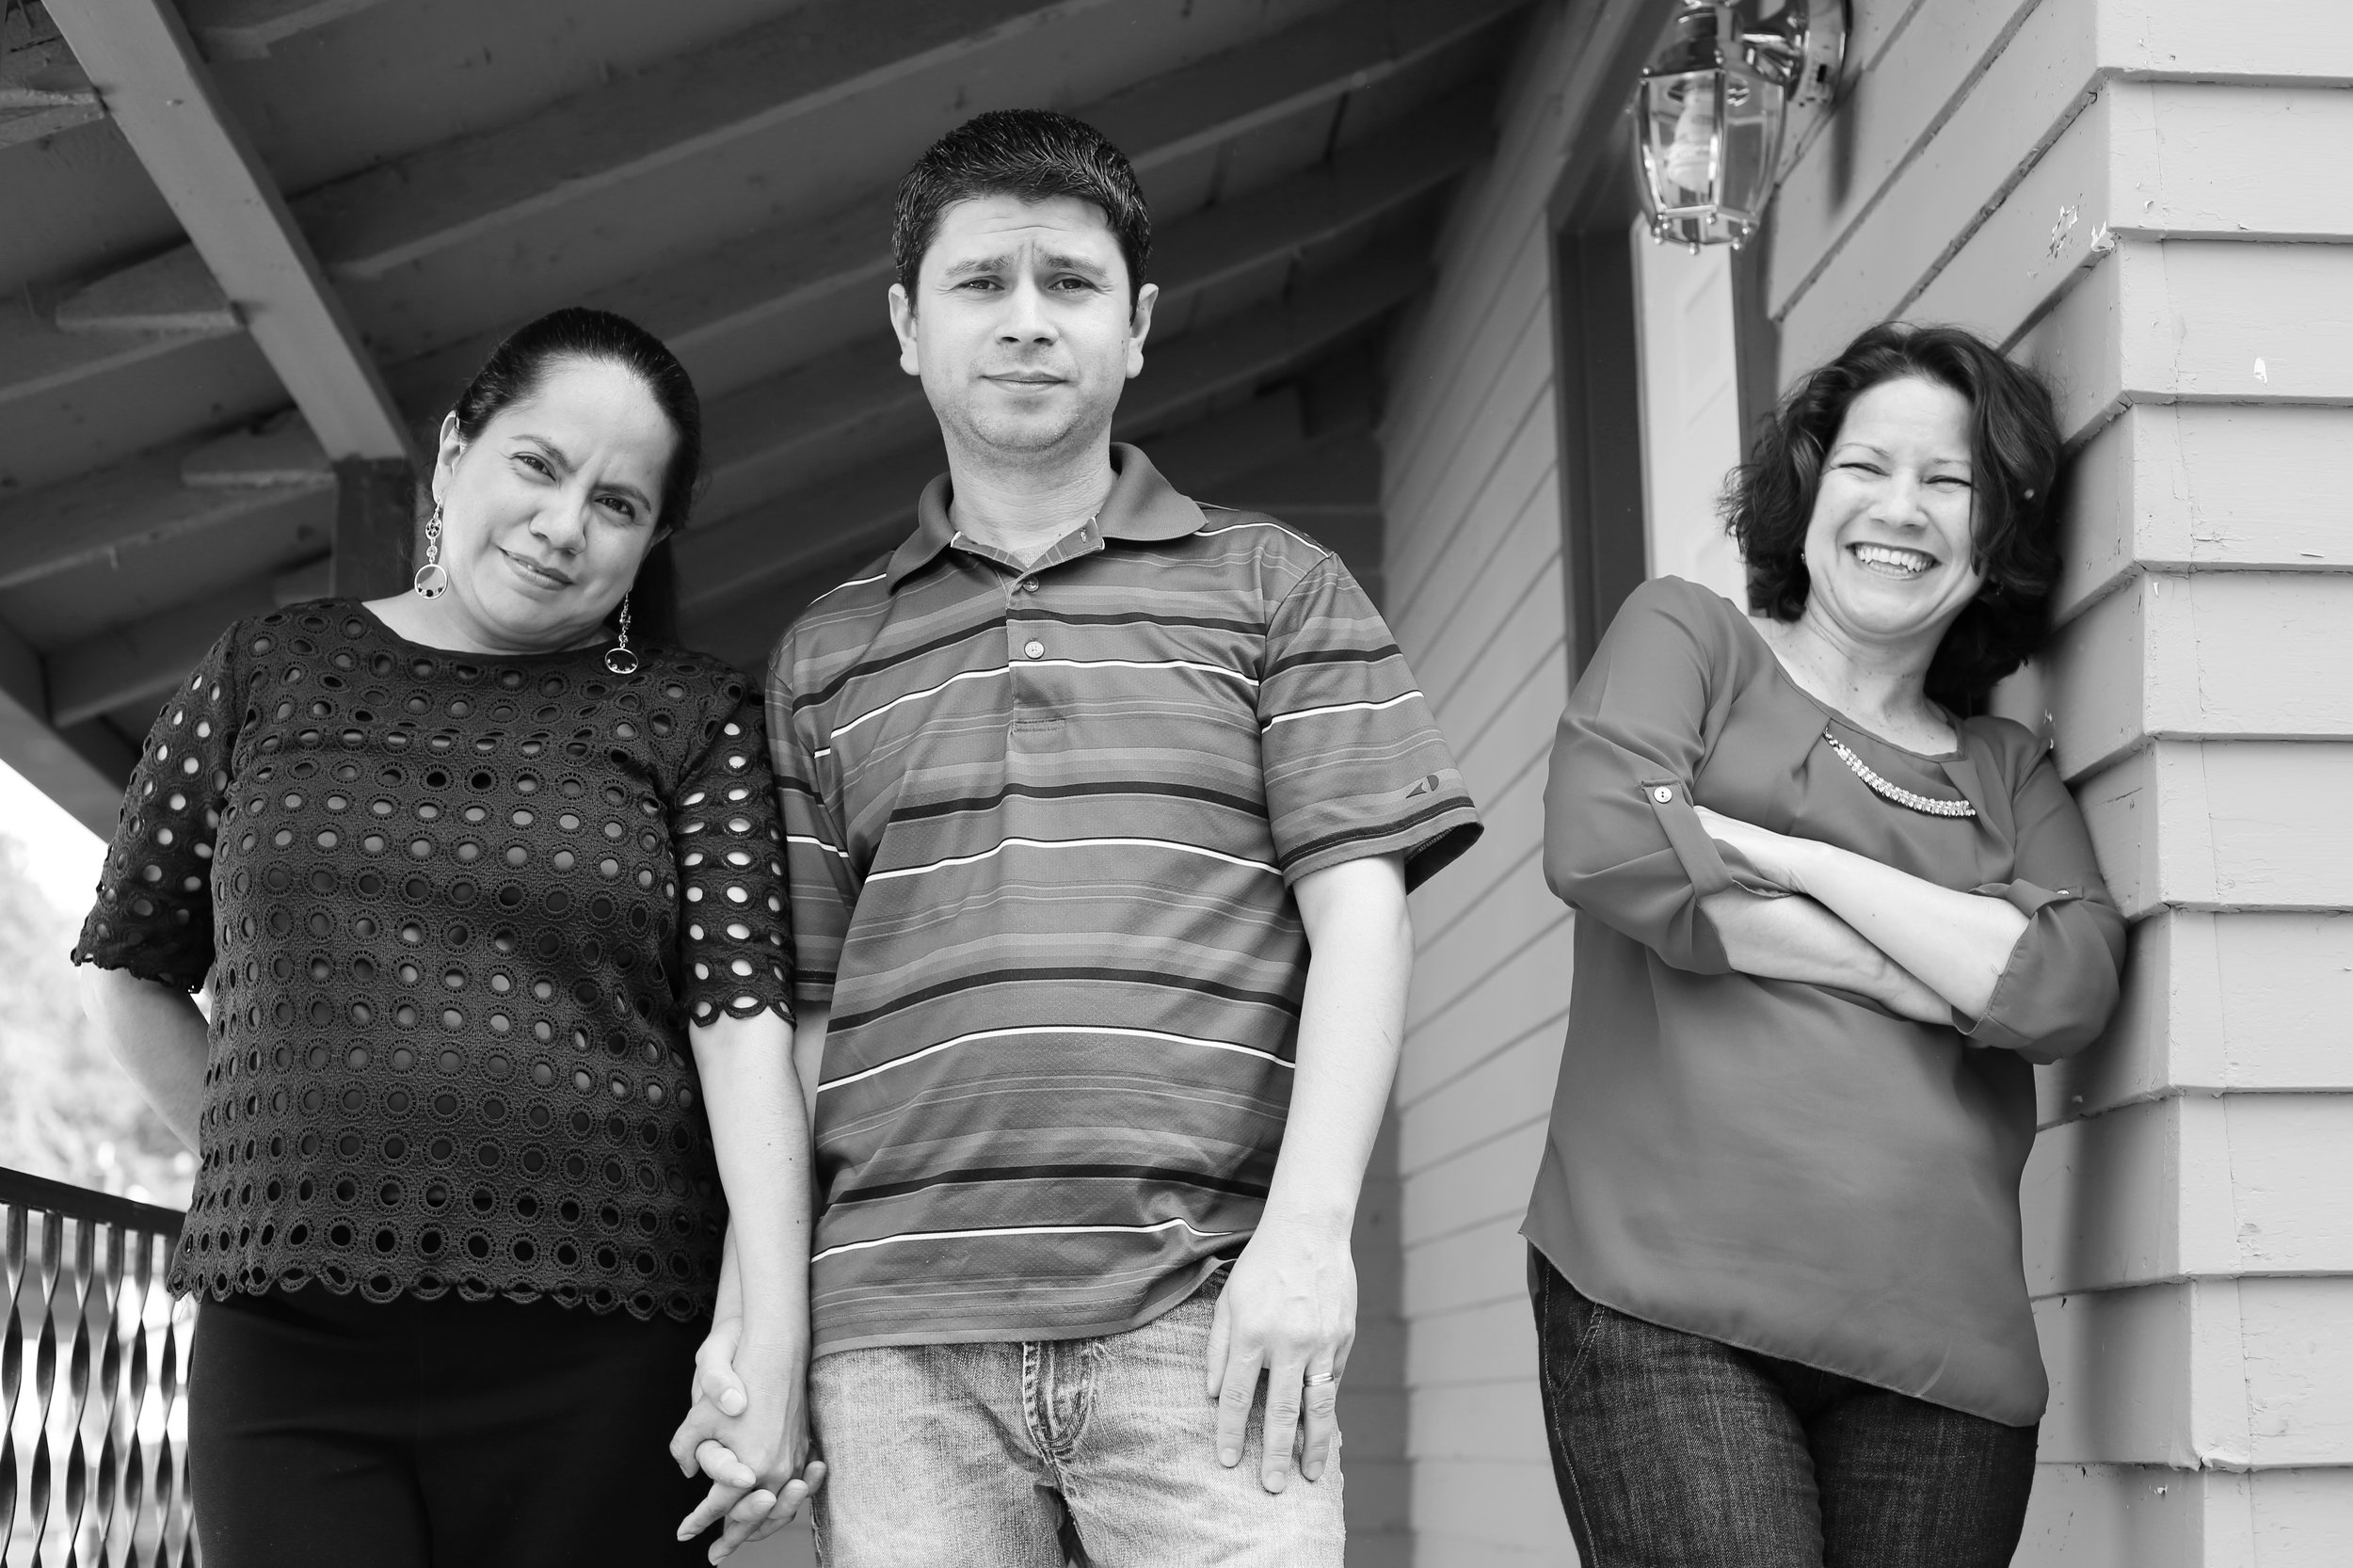 Olga, her husband, and sister-in-law, in front in front of the house they were able to purchase.